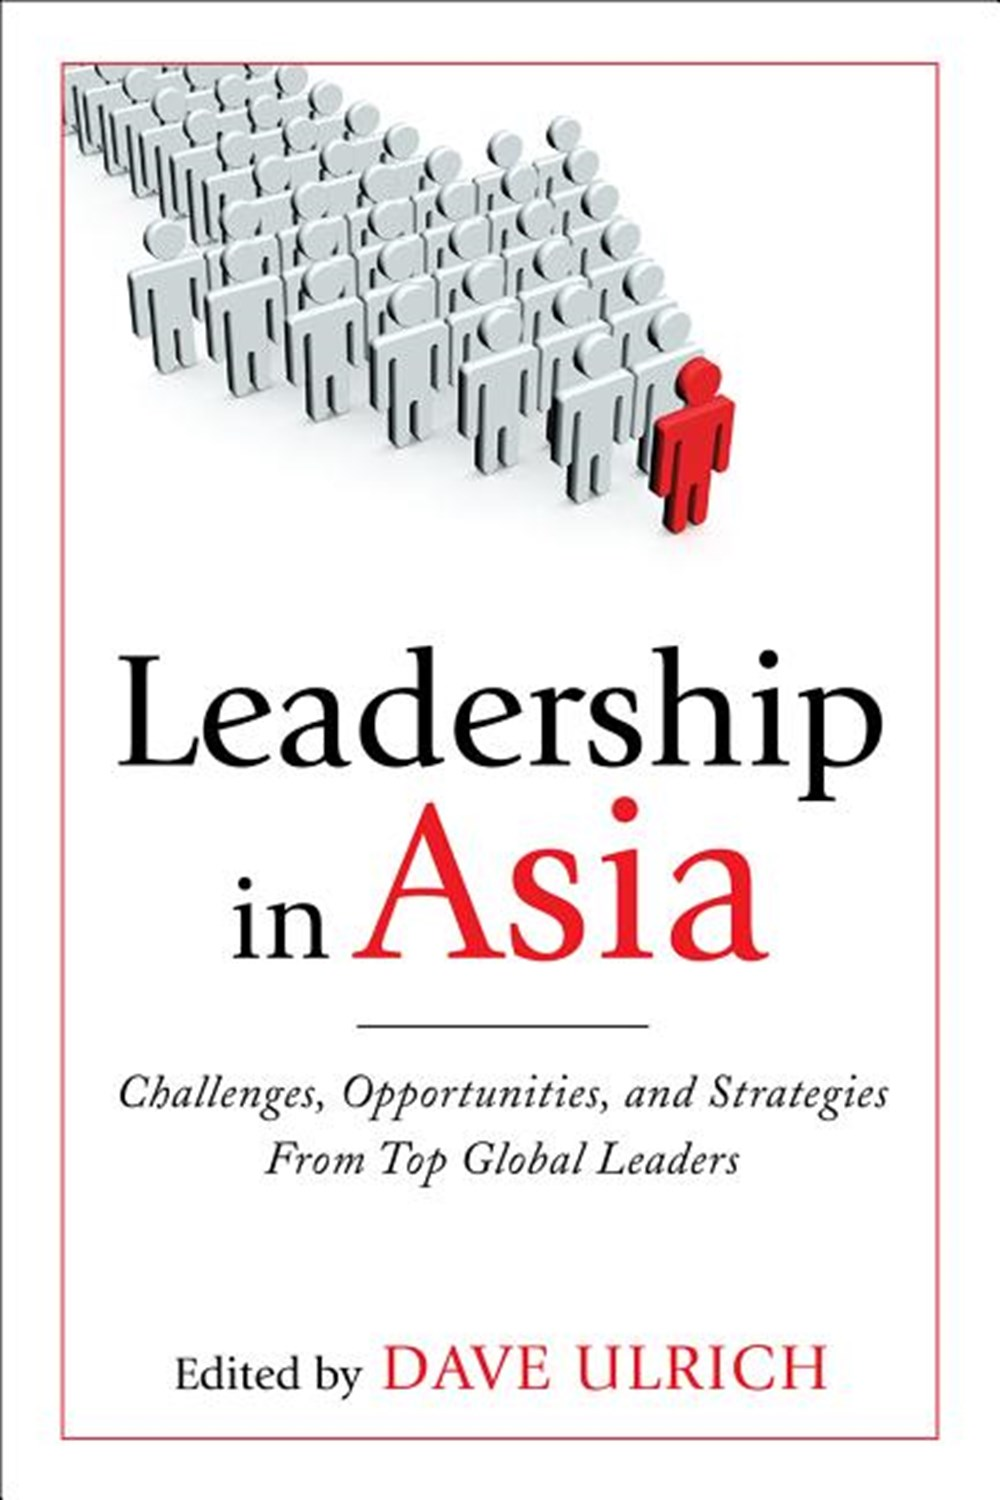 Leadership in Asia Challenges, Opportunities, and Strategies from Top Global Leaders